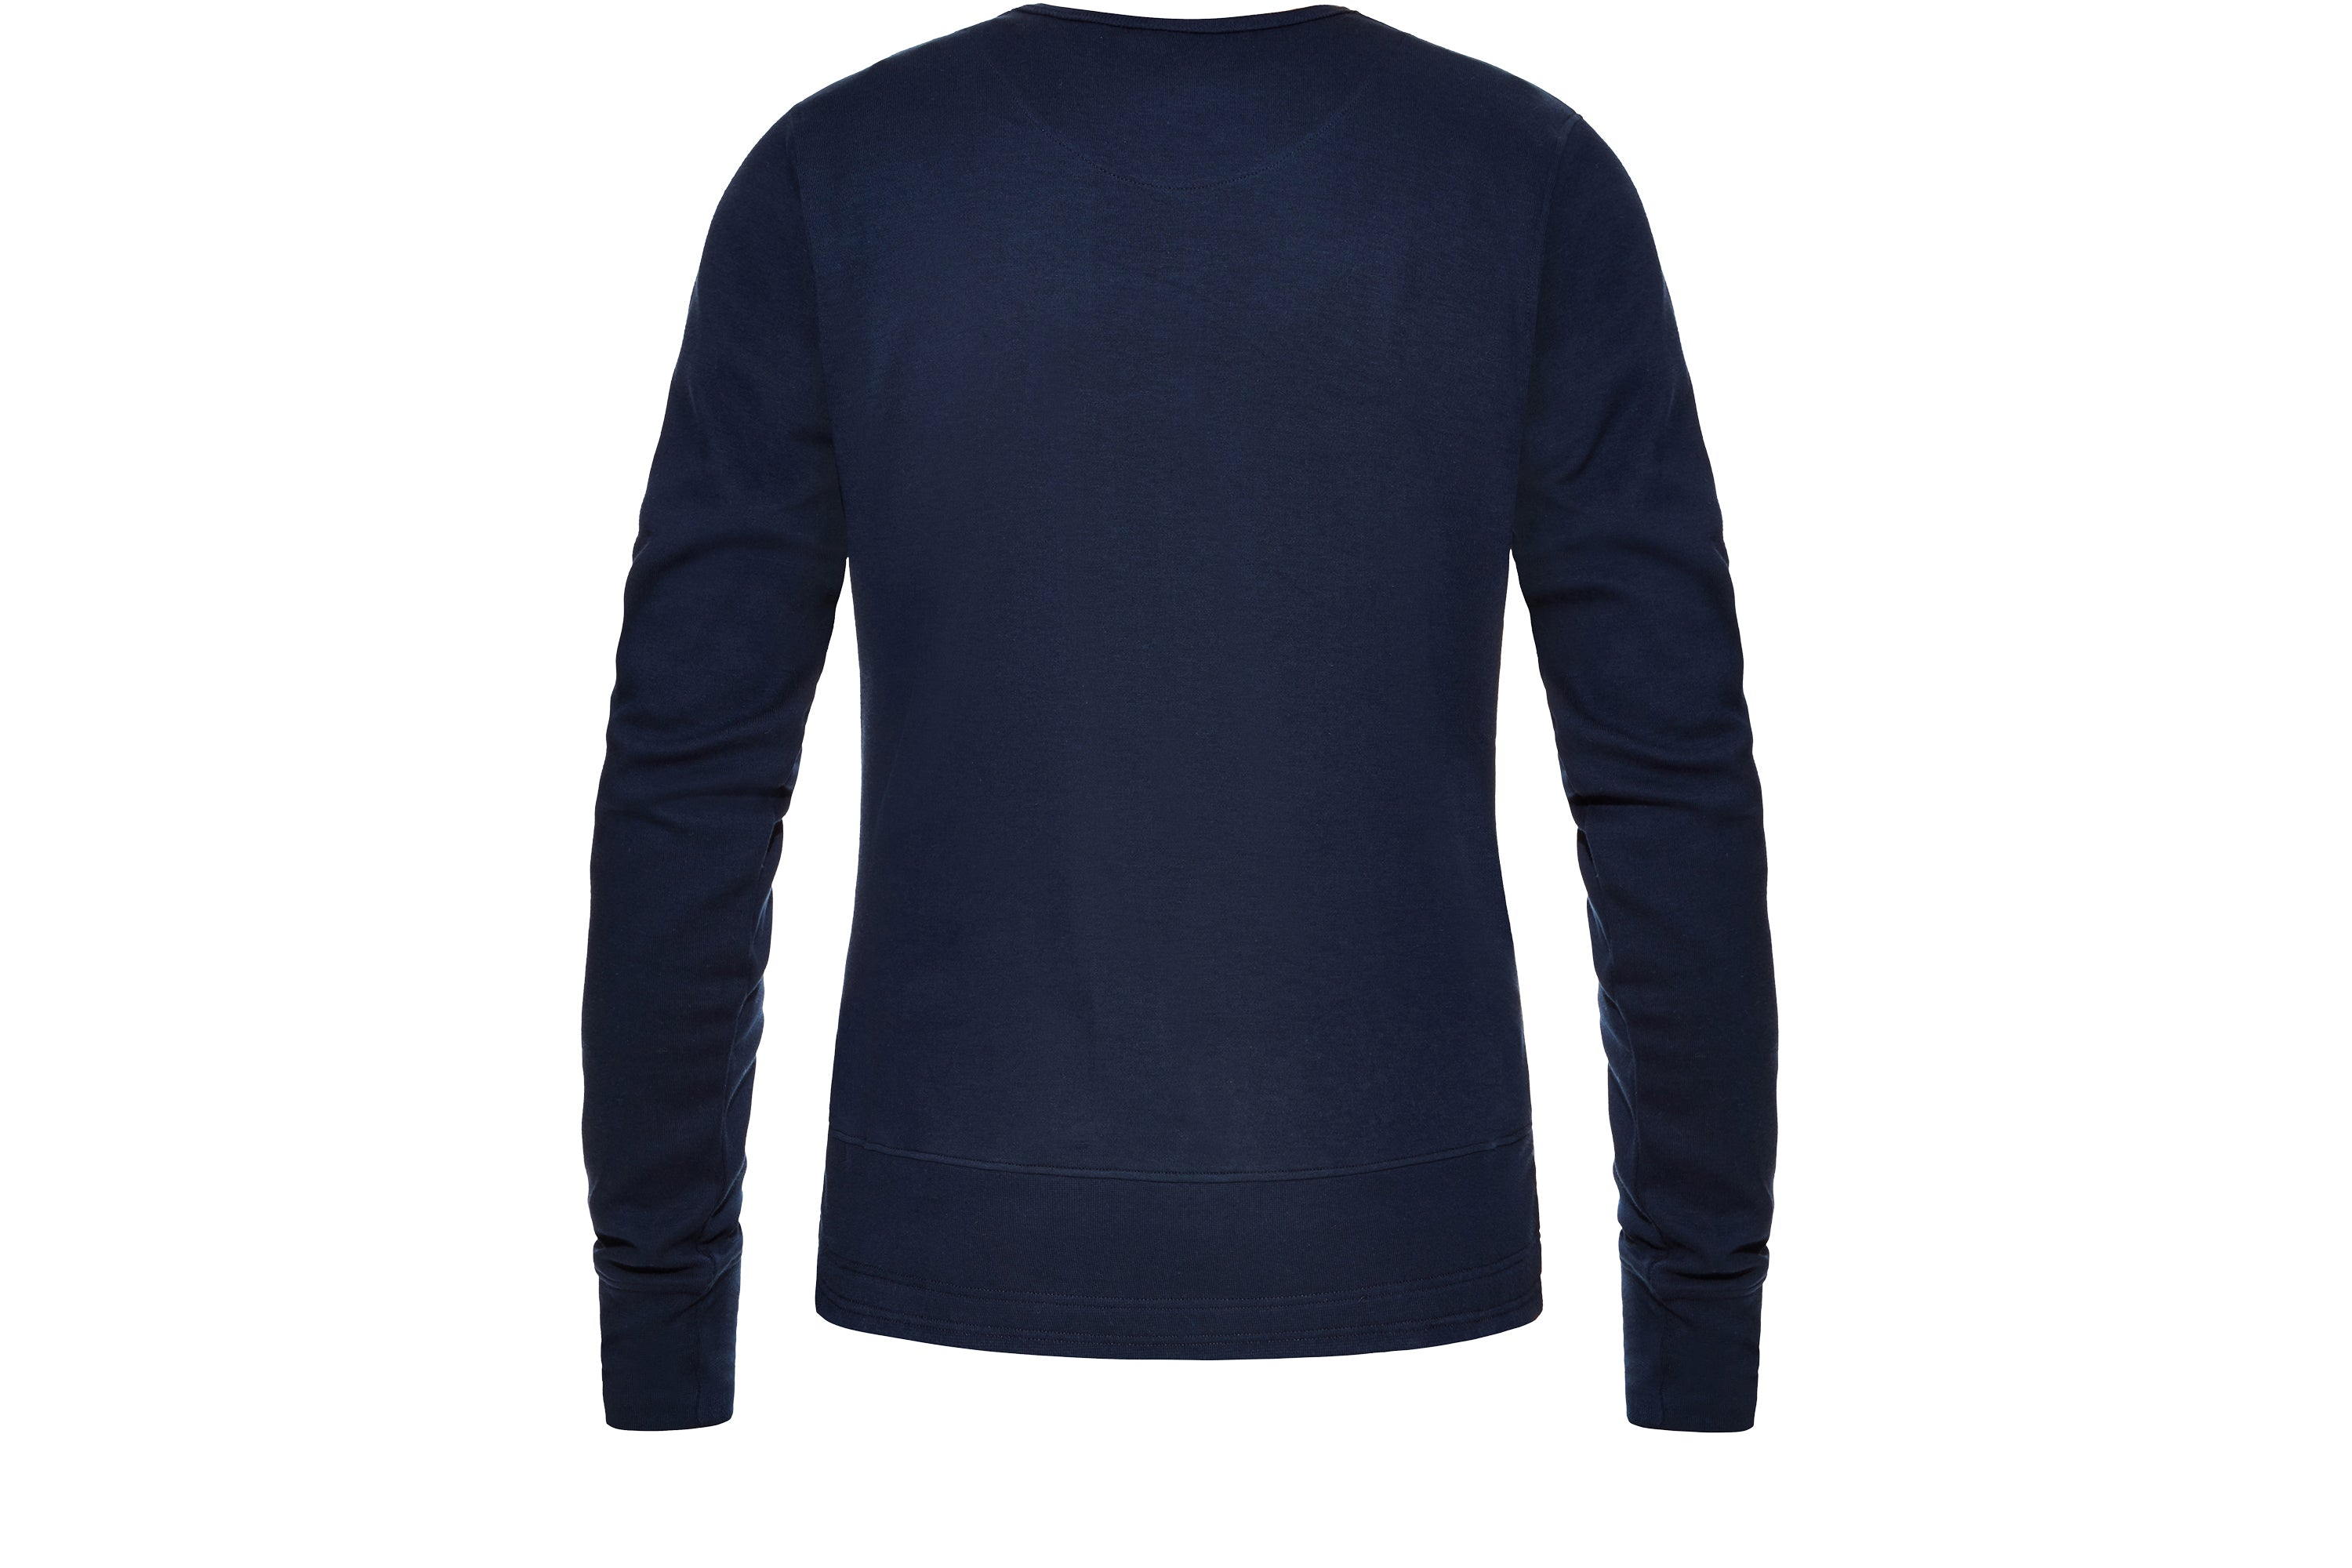 Ashley Watson Cardington sweatshirt